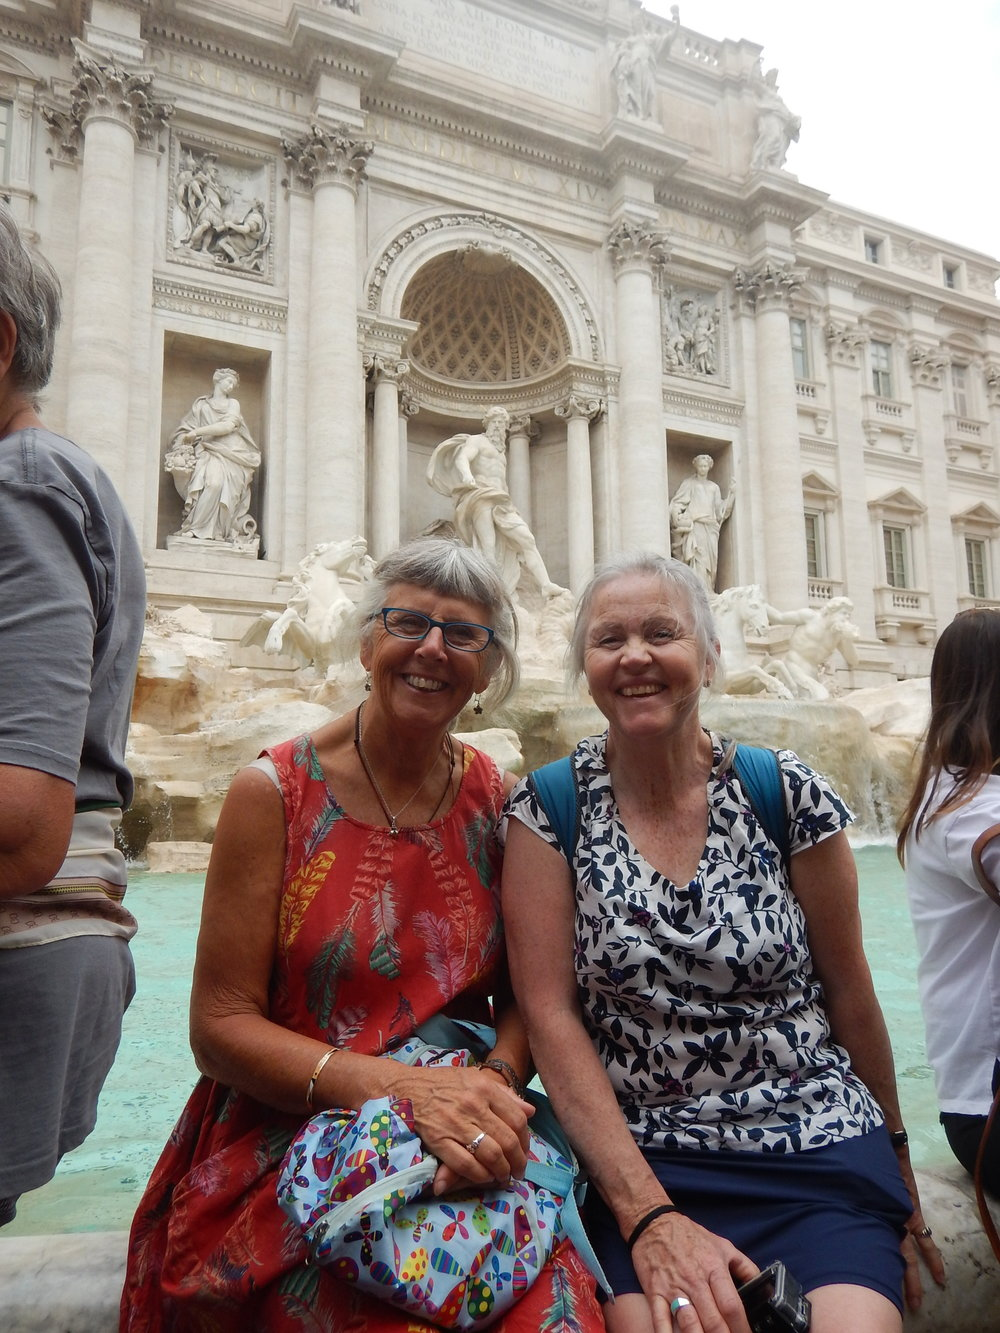 By the Trevi Fountain after I'd thrown all my money into the fountain in the hope of bringing some luck to the electrical woes I was having with the bike. it worked! One week later I was back on the road, but no time to head south to Malta, hence my request to Margot.